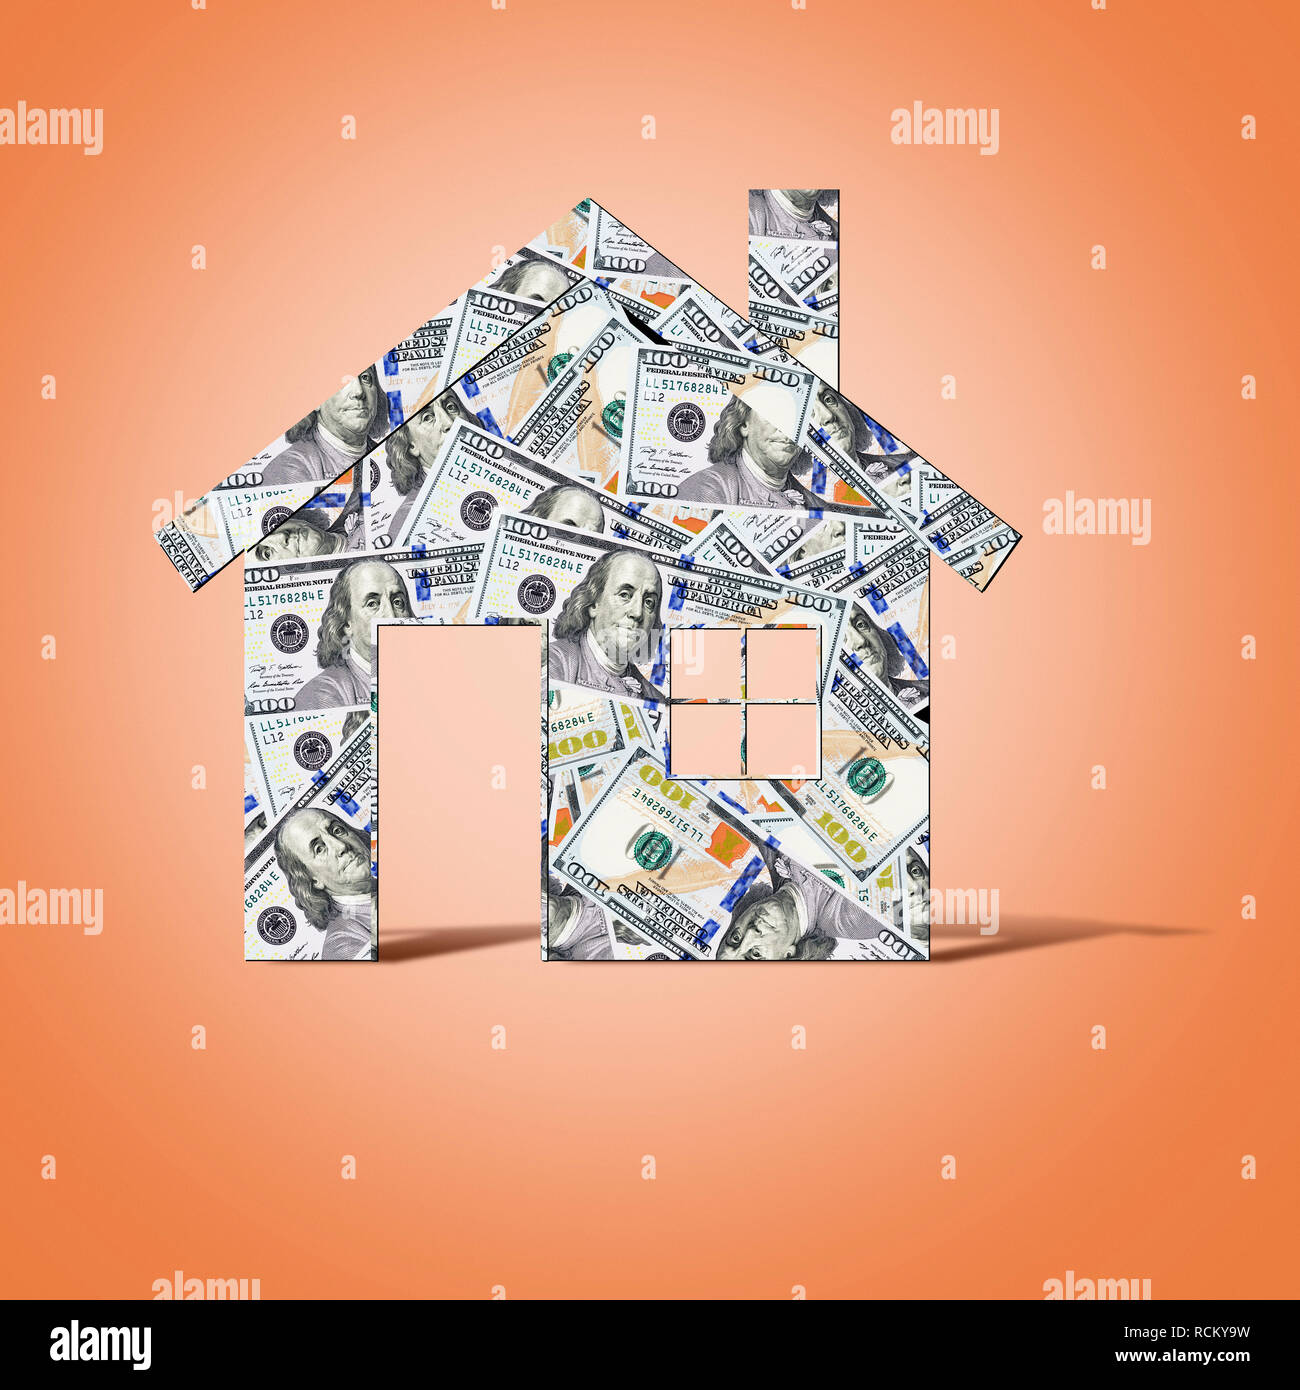 US dollar banknotes in shape of house, computer generated image, orange colour background - Stock Image